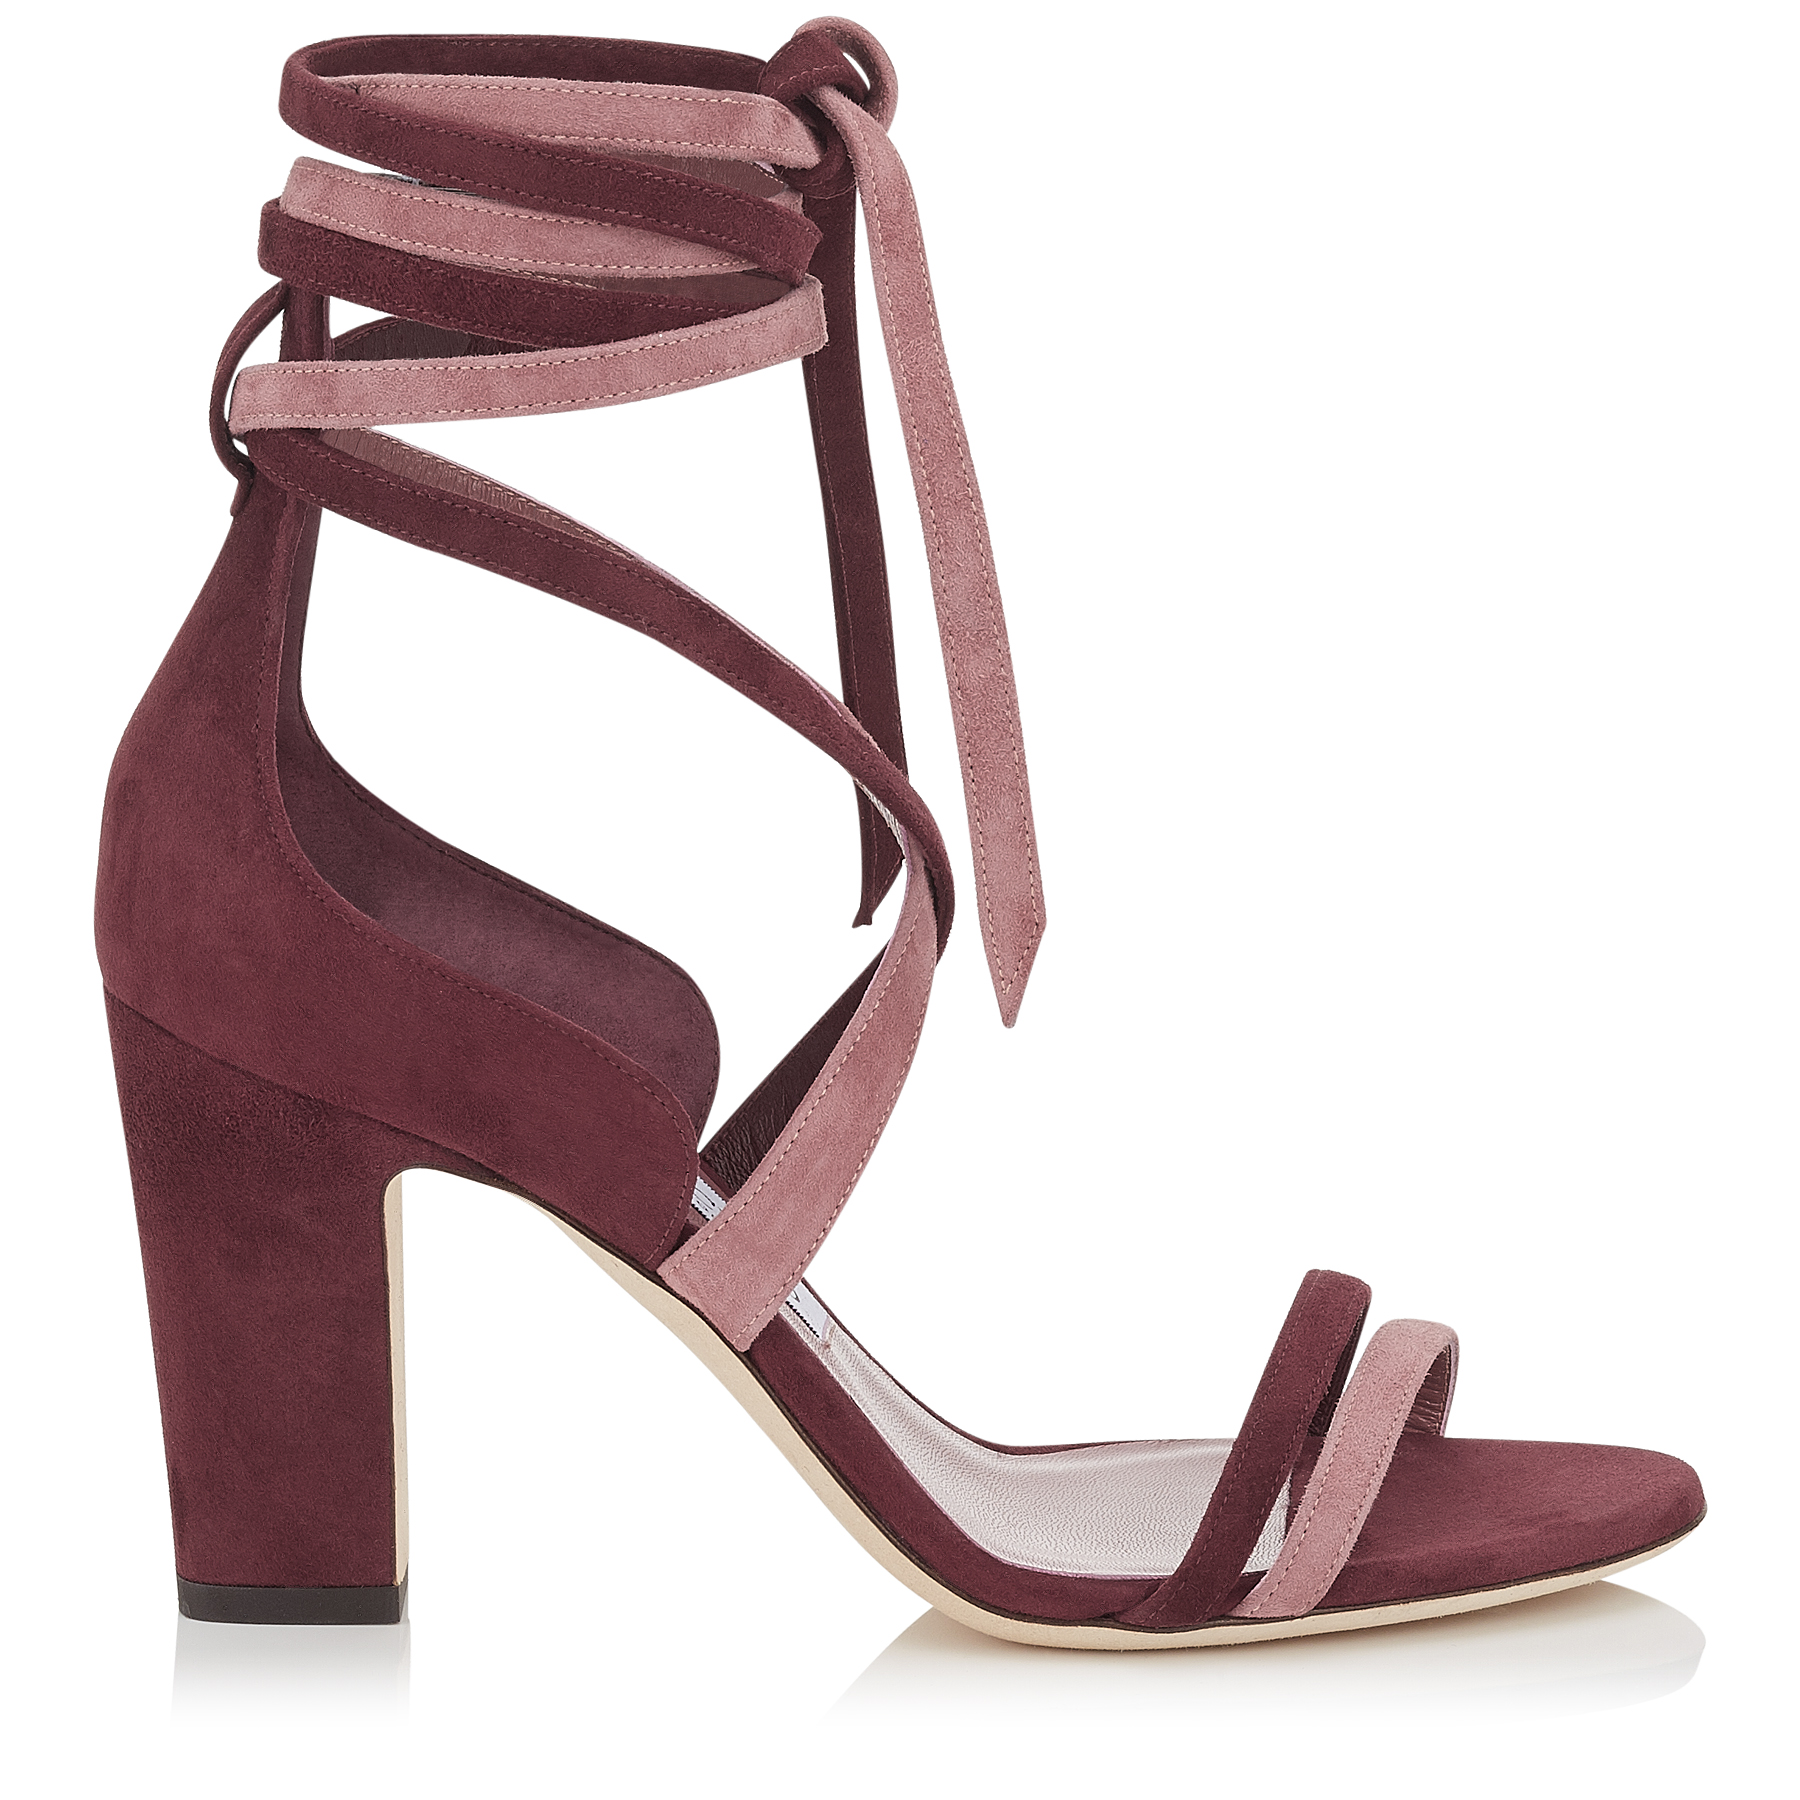 FLYNN 85 Vino Suede Mix Sandals by Jimmy Choo